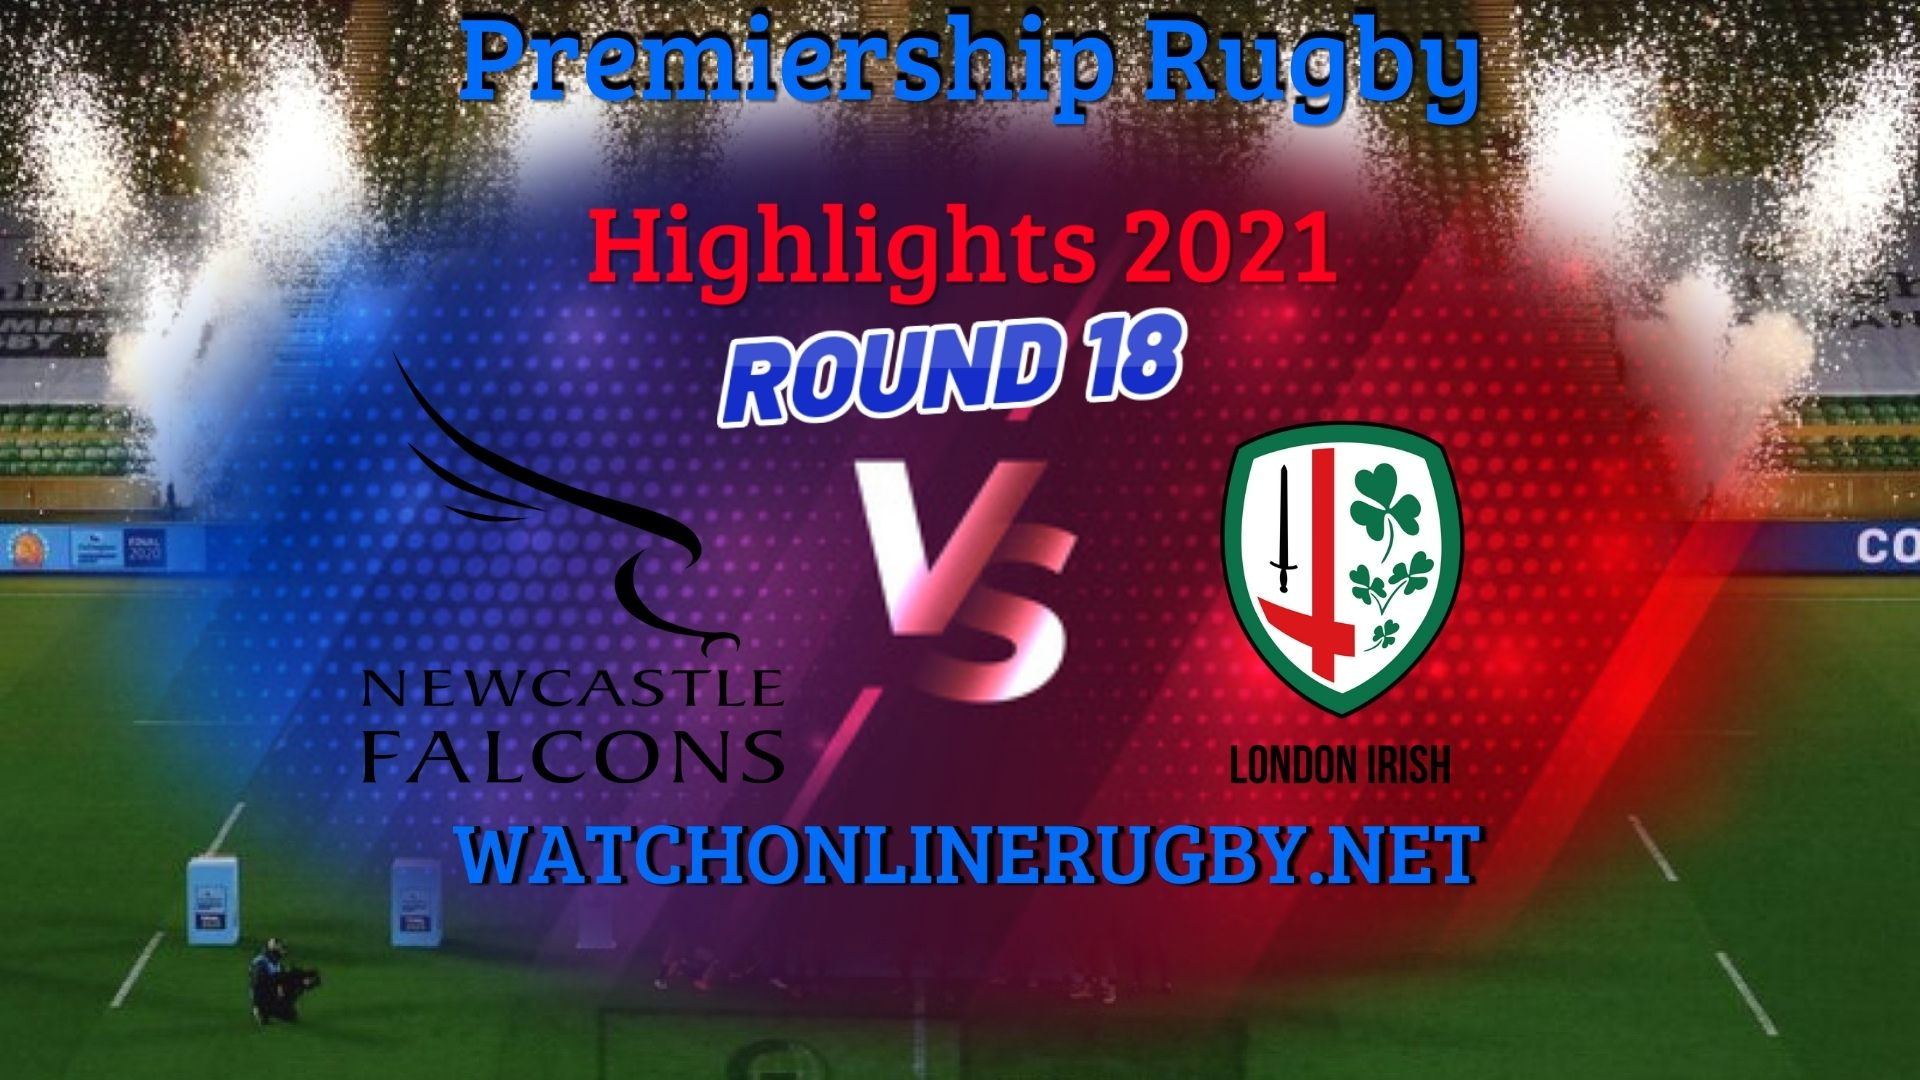 Newcastle Falcons Vs London Irish Premiership Rugby 2021 RD 18